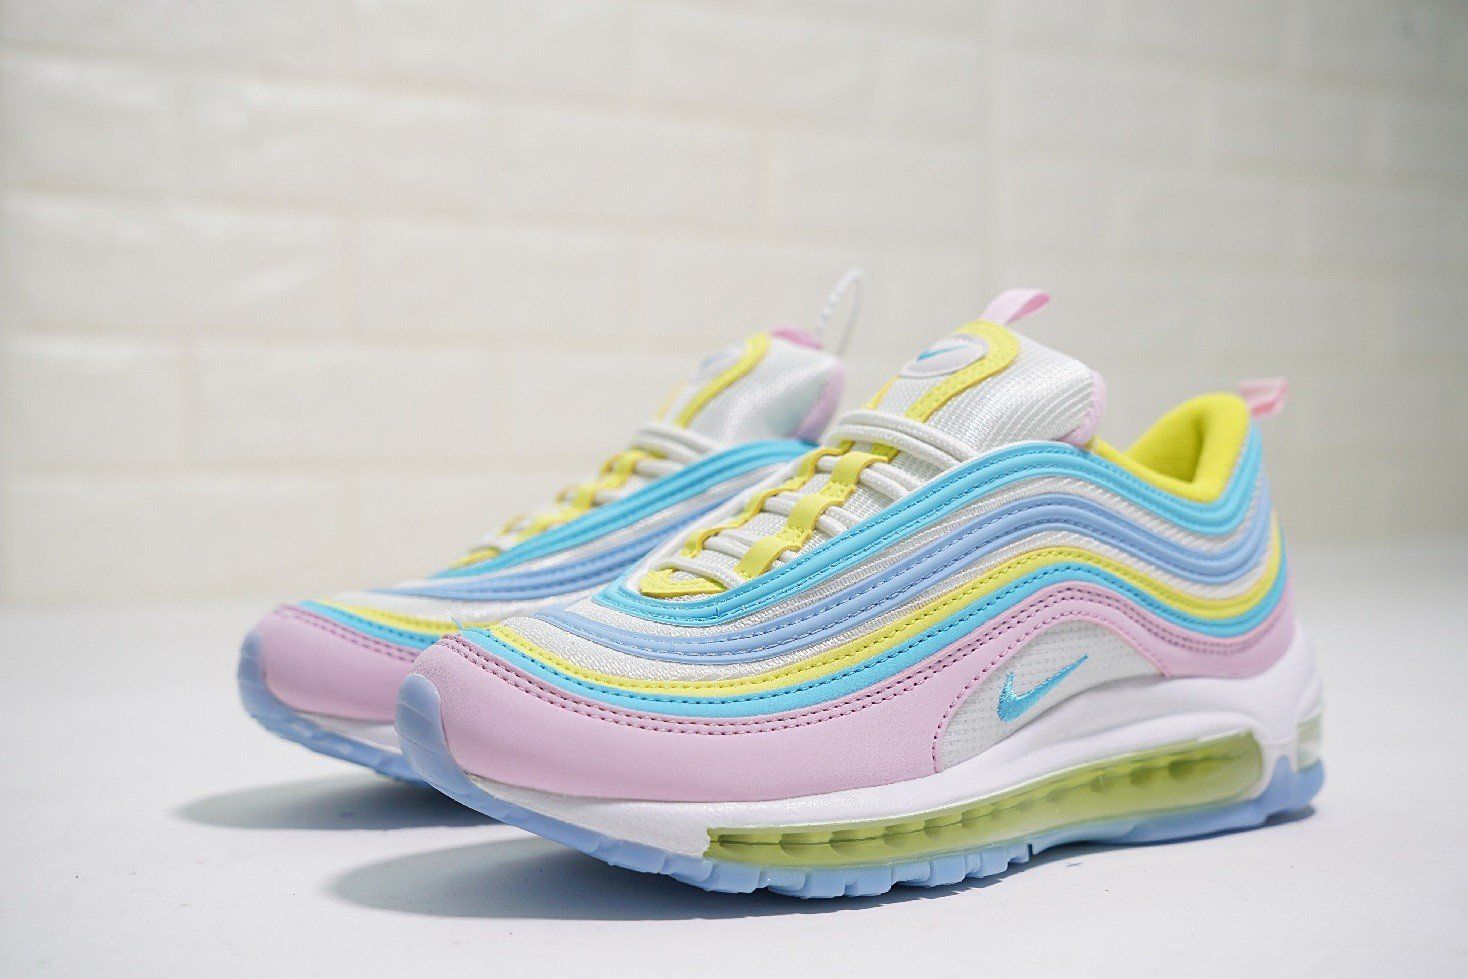 Where To Buy Women Nike Air Max 97 Pink Blue Yellow Corduroy Nike Air Max 97 Nike Air Max Air Max 97